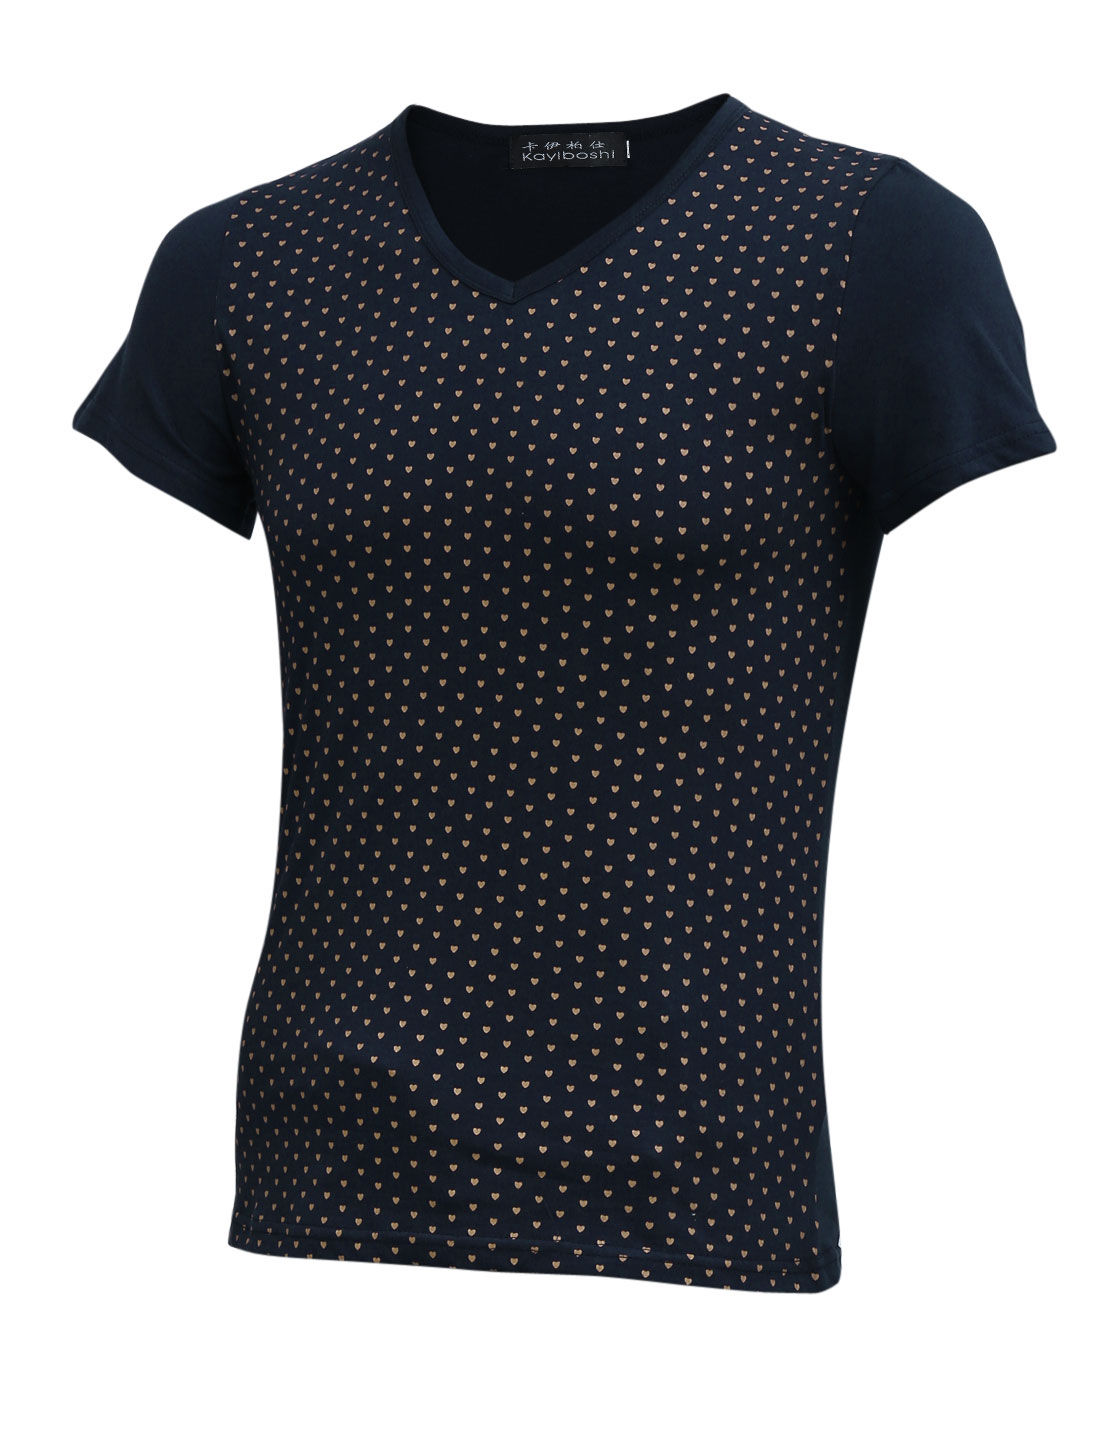 Men Navy Blue Hearts Pattern V Neck Slim Fit Slipover Basic T-Shirt S